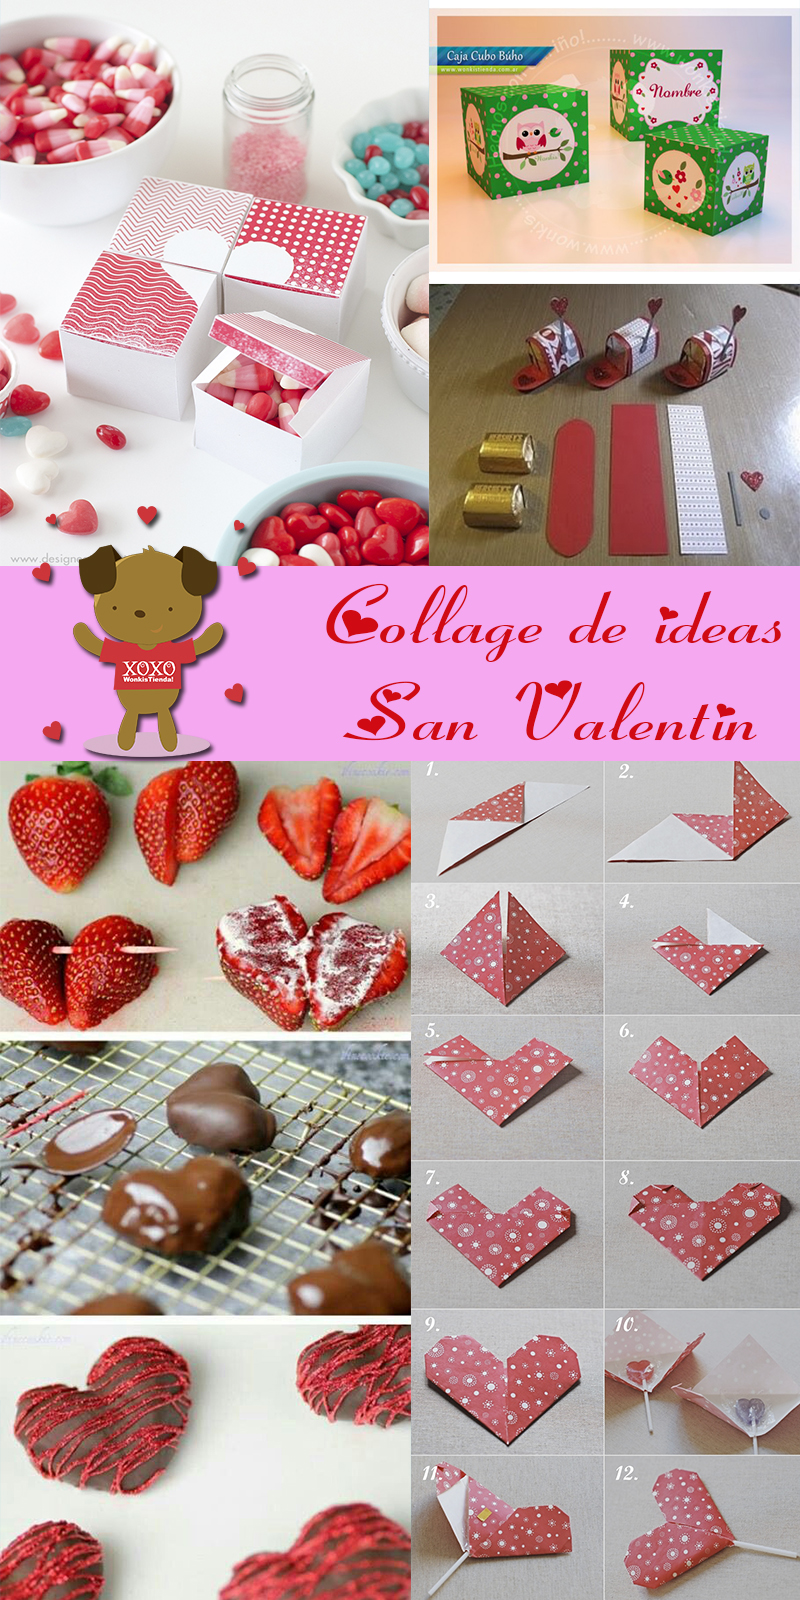 Ideas To Decorate A Living Room With White Living Room Set: San Valentin: Collage De Ideas